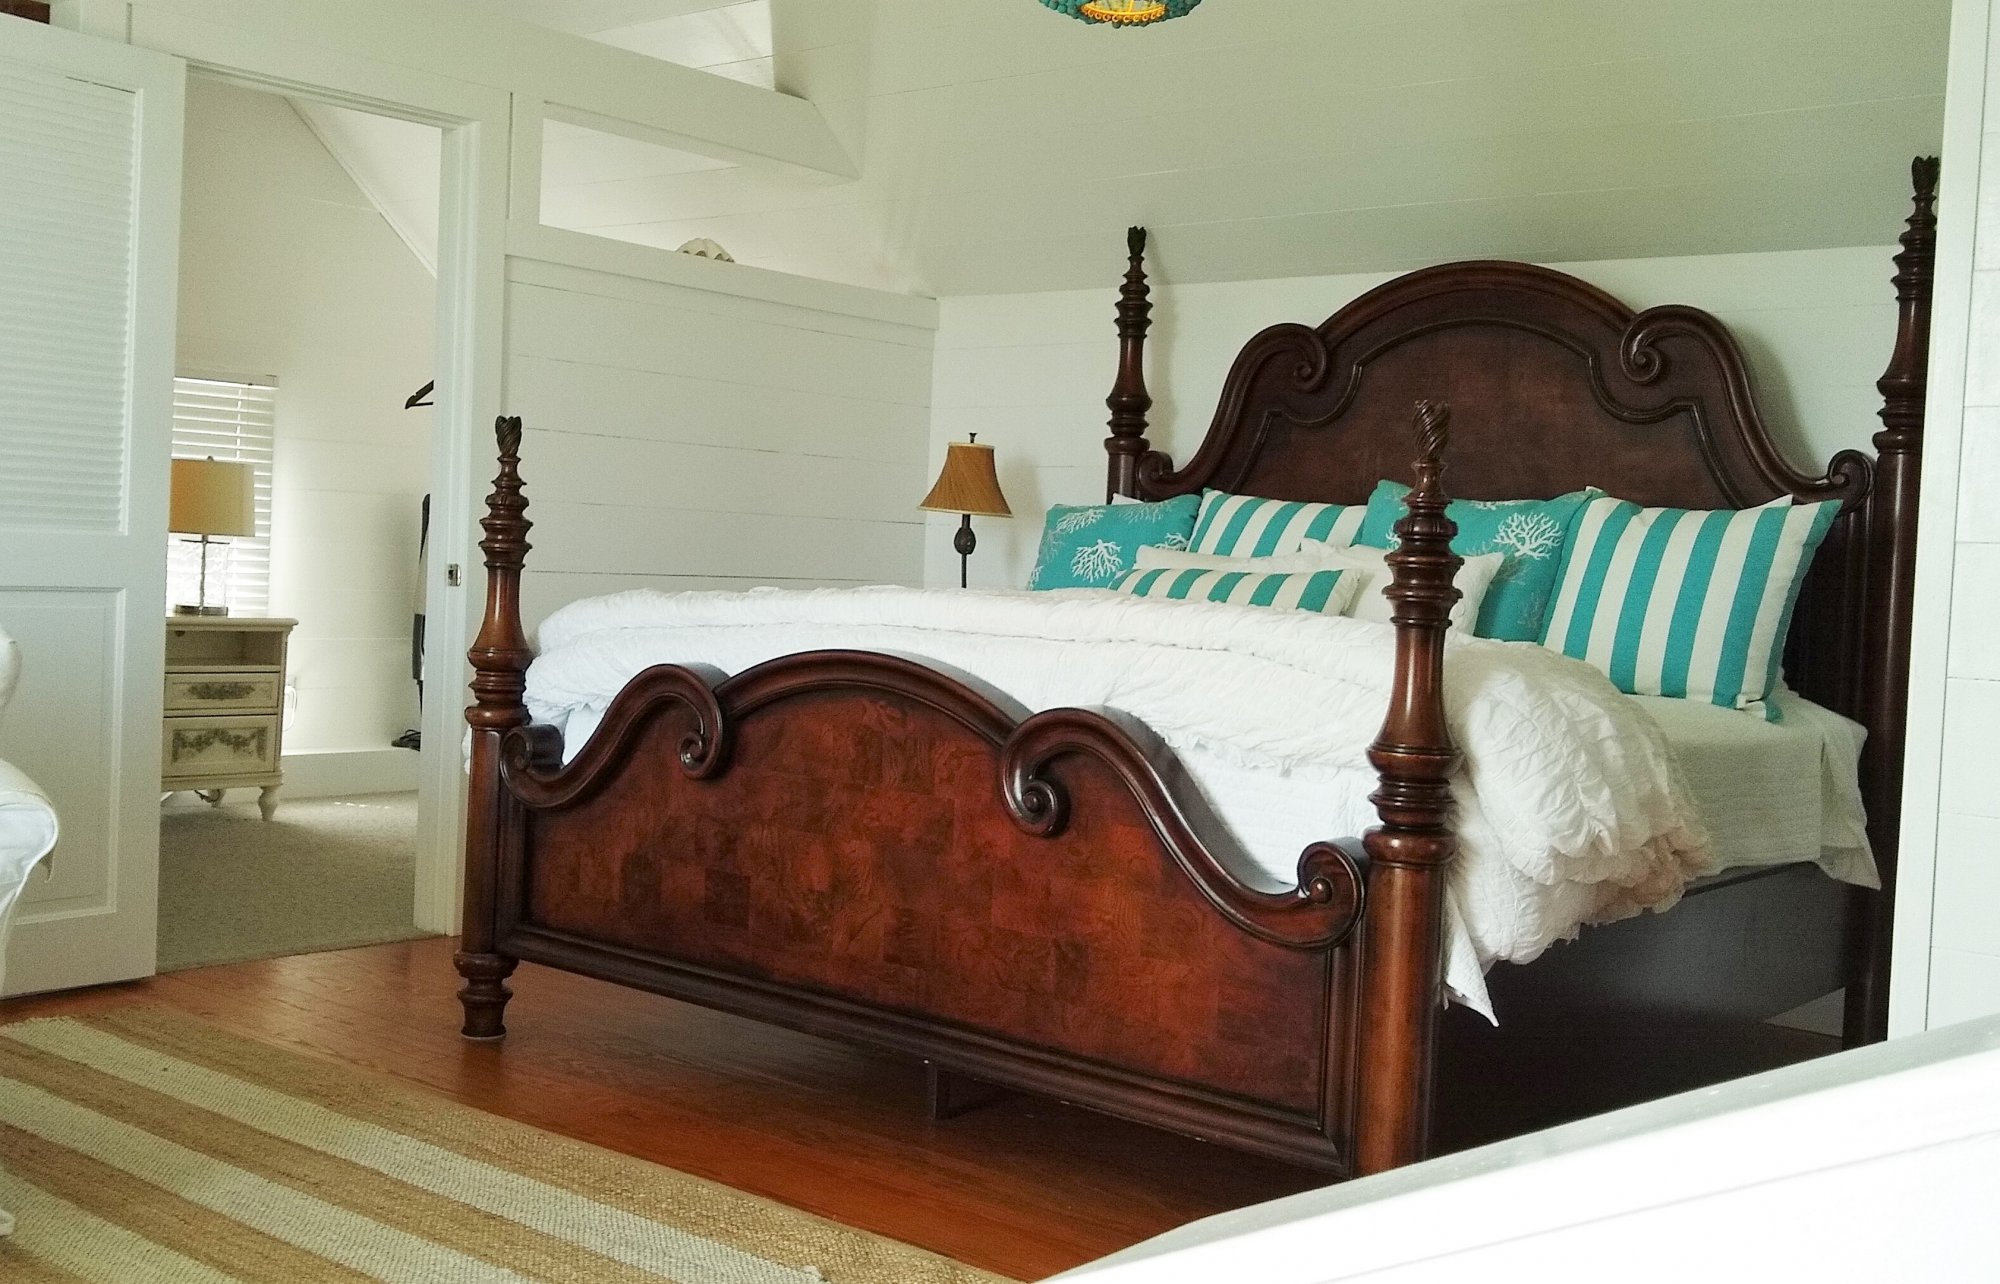 Guest Rooms at Surf Song B&B in Tybee Island, GA